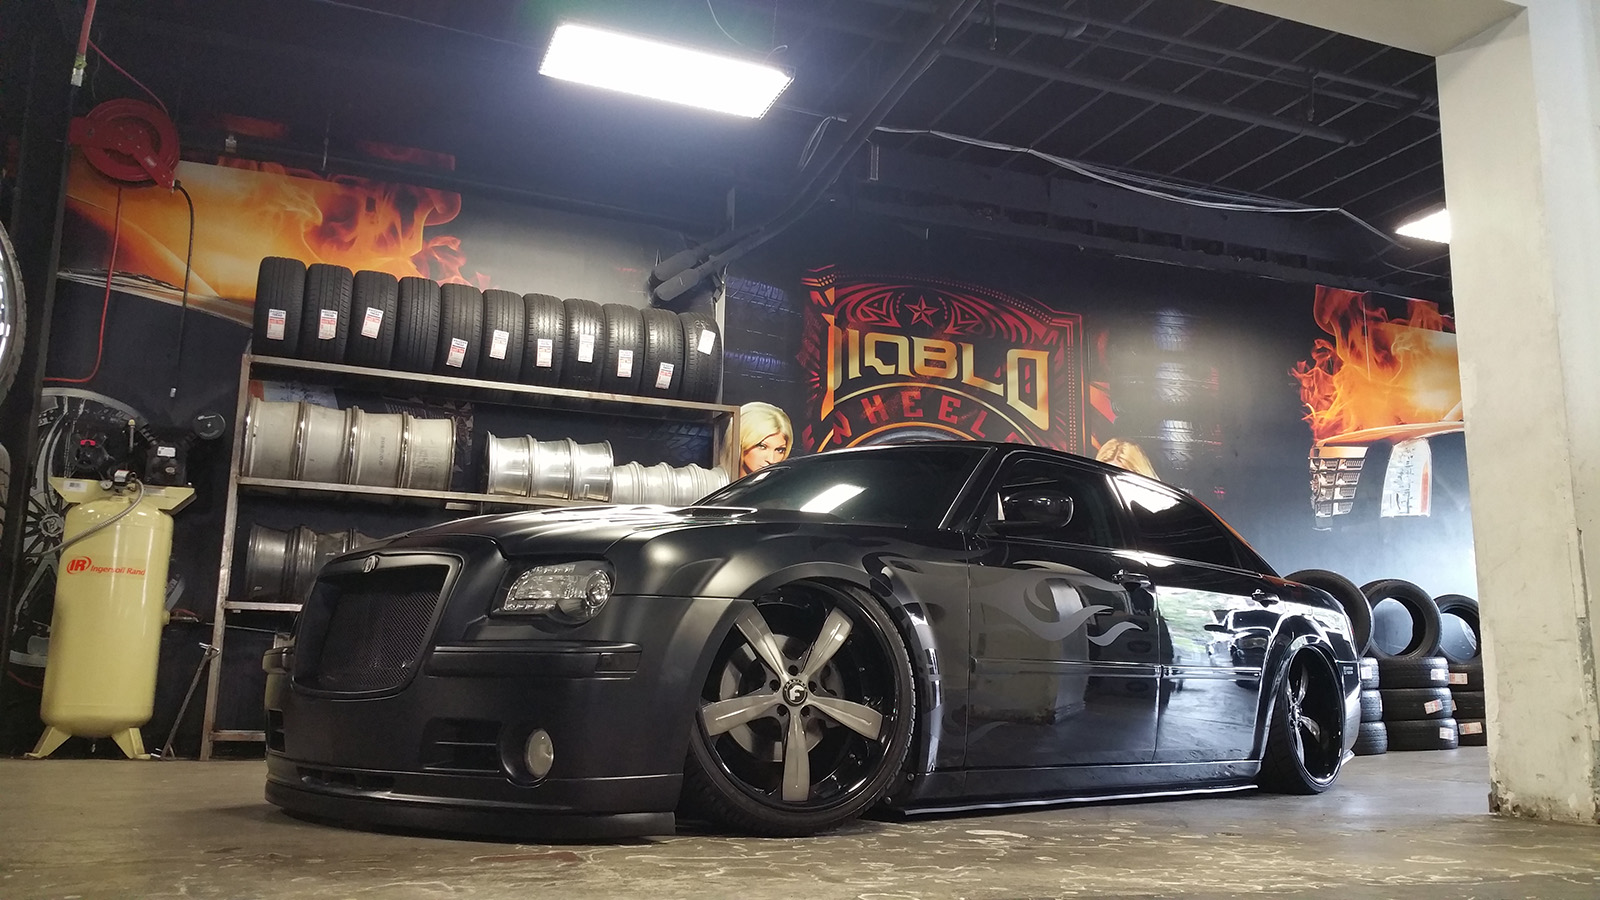 03 David Gutierrez 2007 Chrysler 300 LWB PASMAG Tuner Battlegrounds